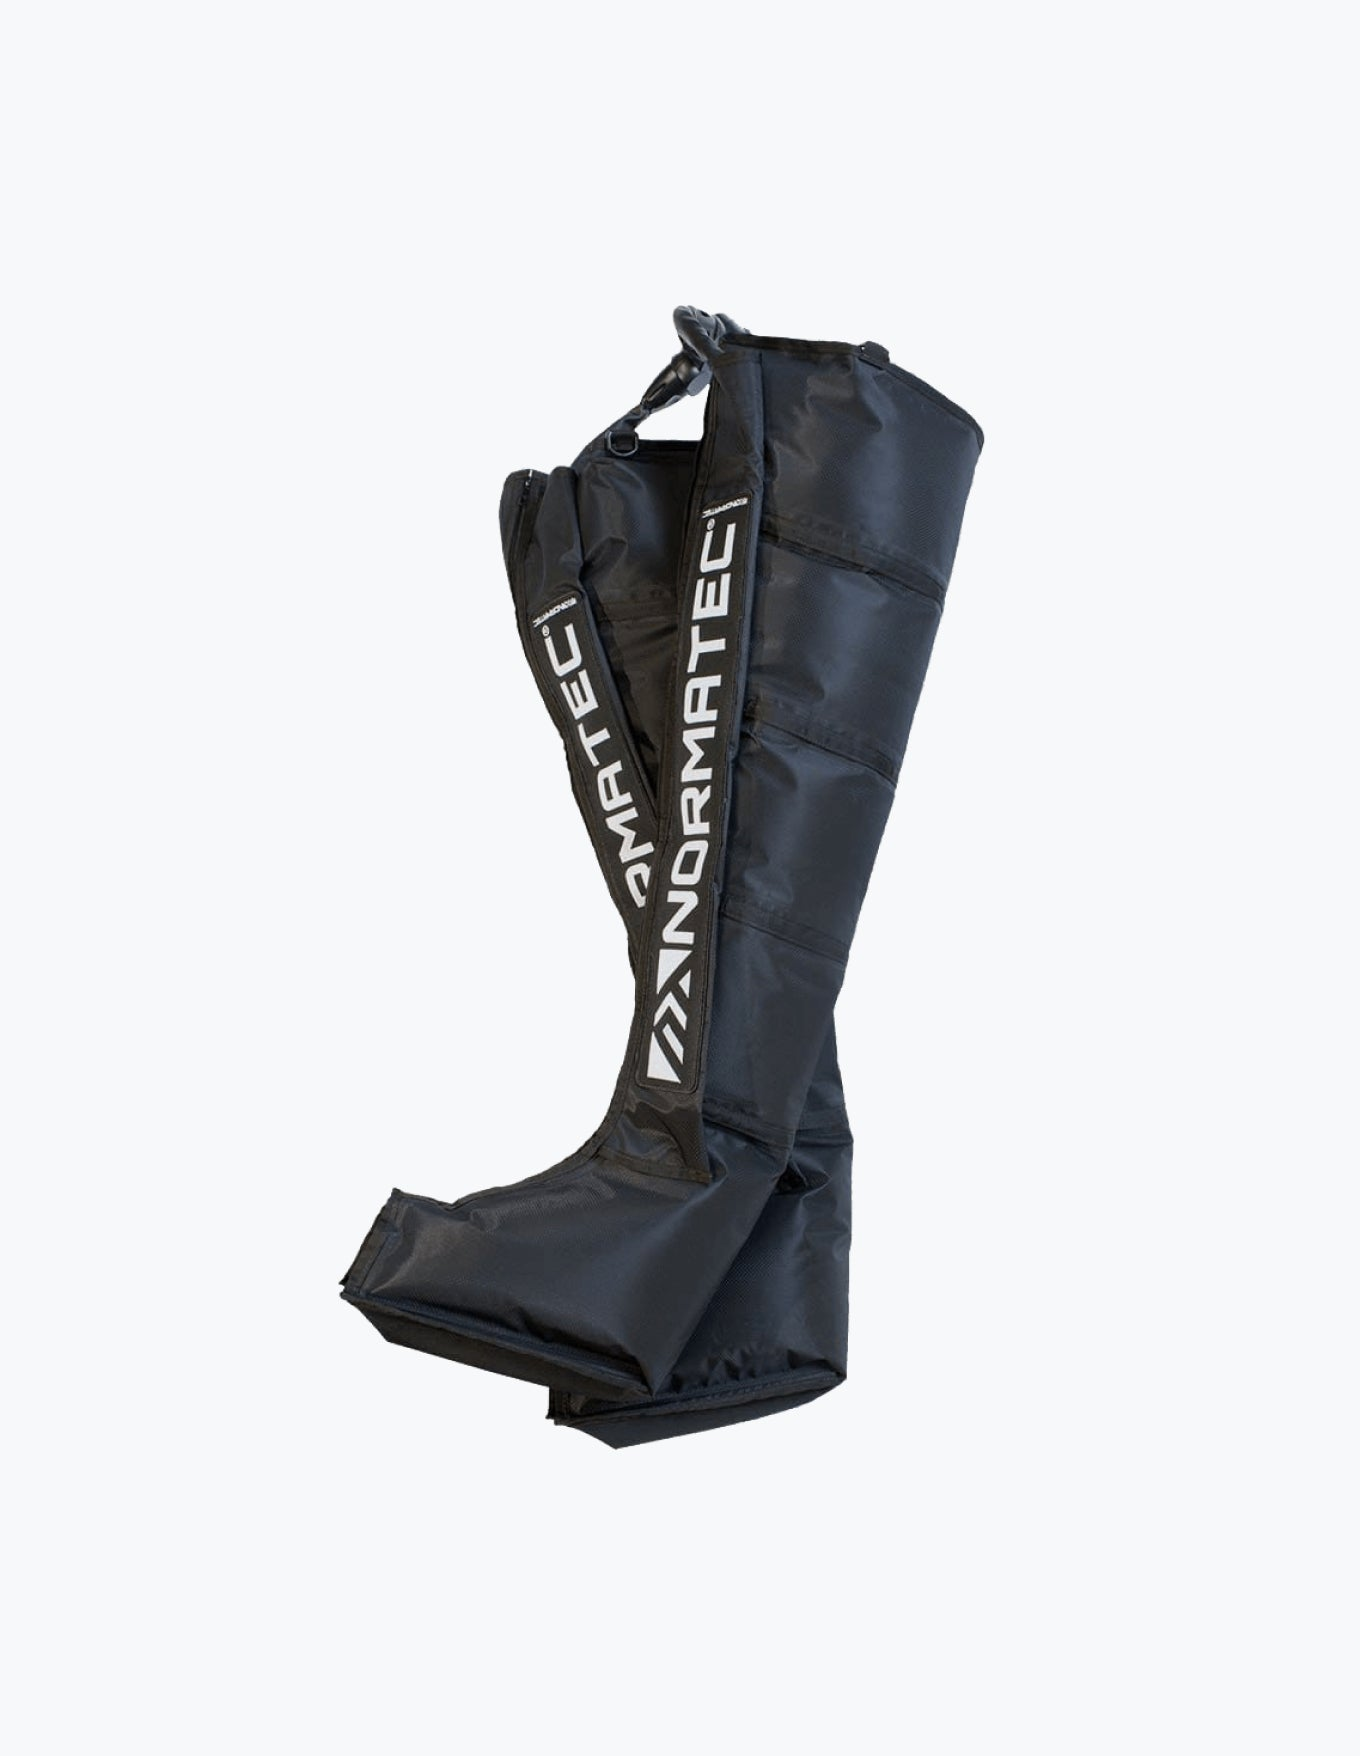 Normatek muscle recovery boots